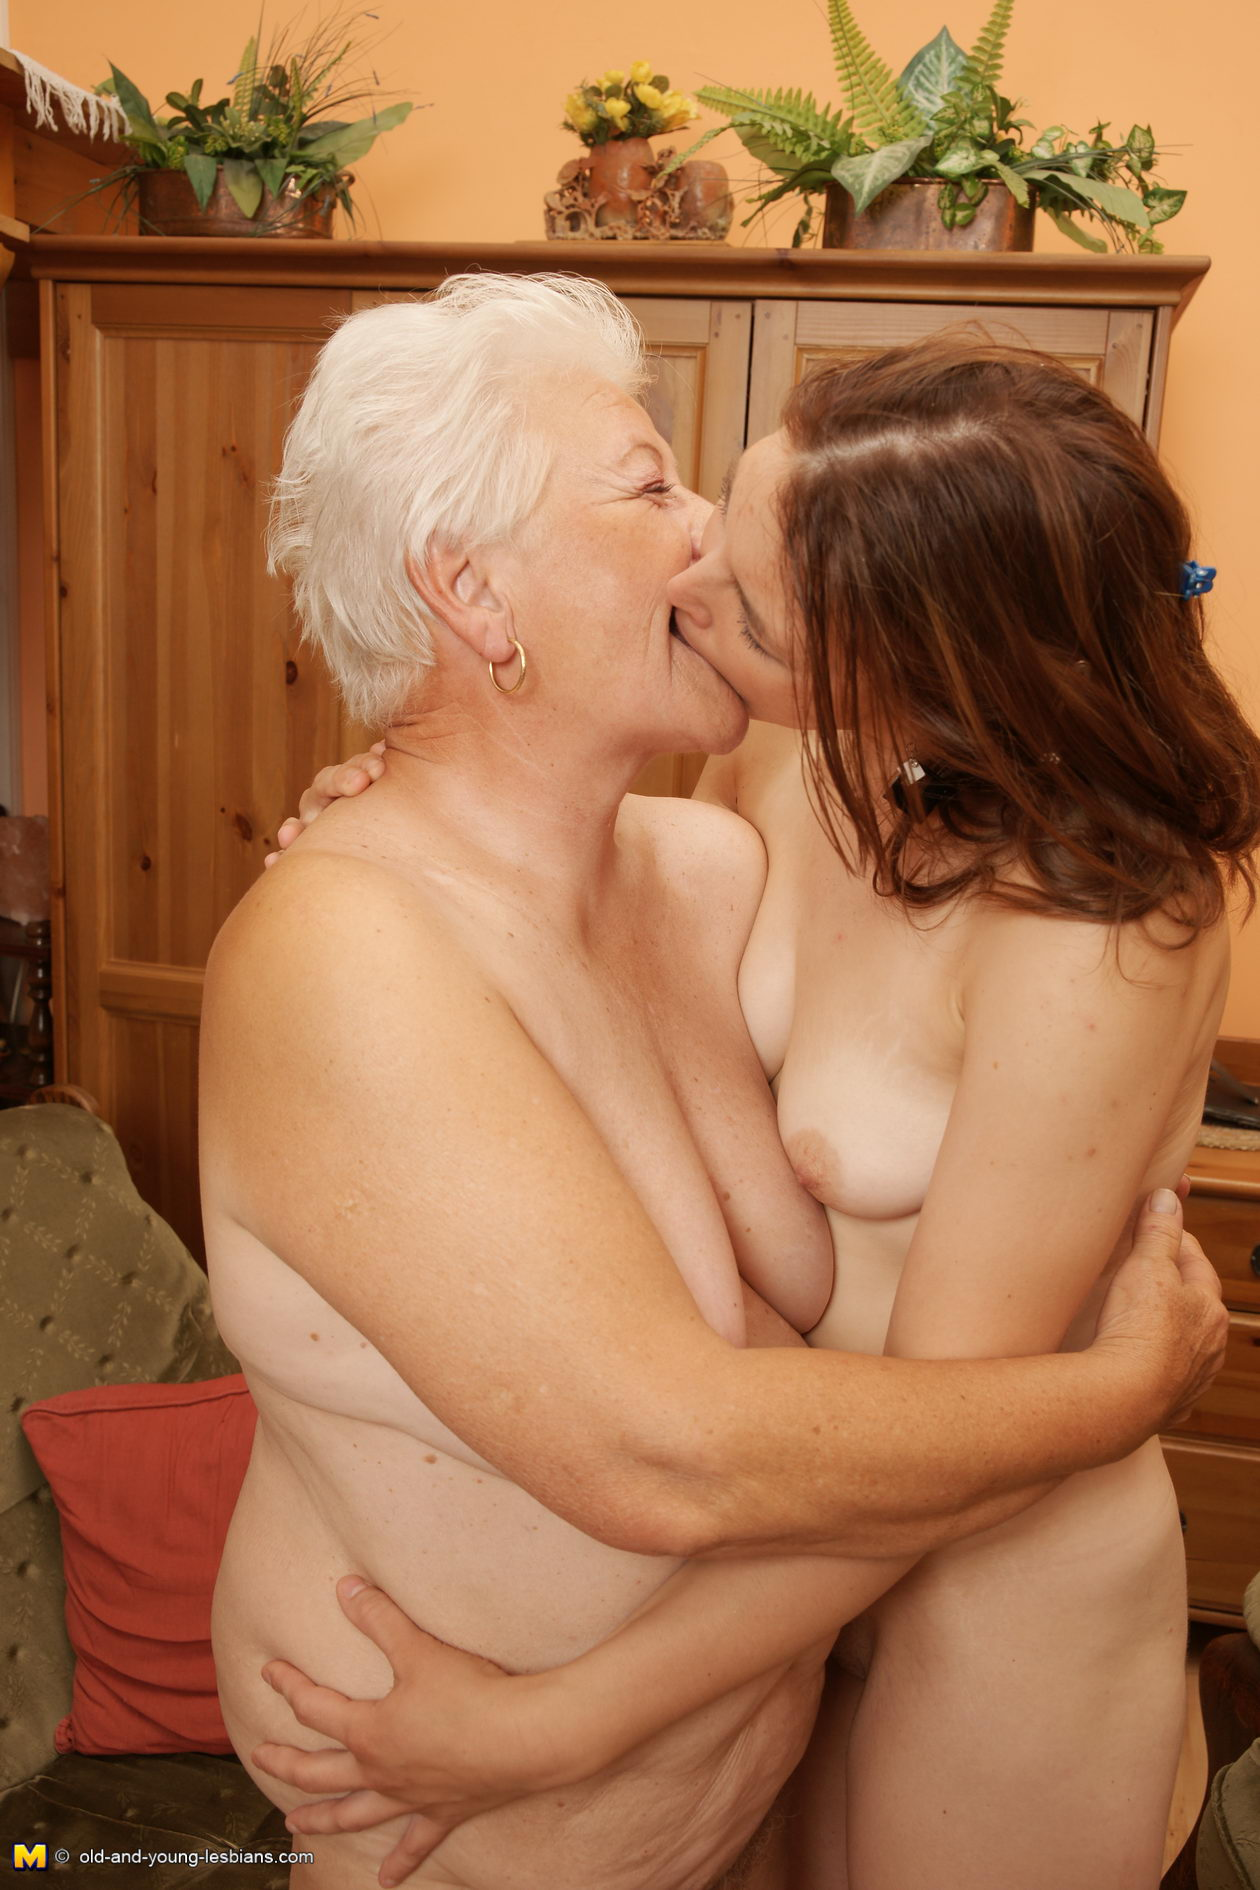 Lesbian french kissing mature streams accept